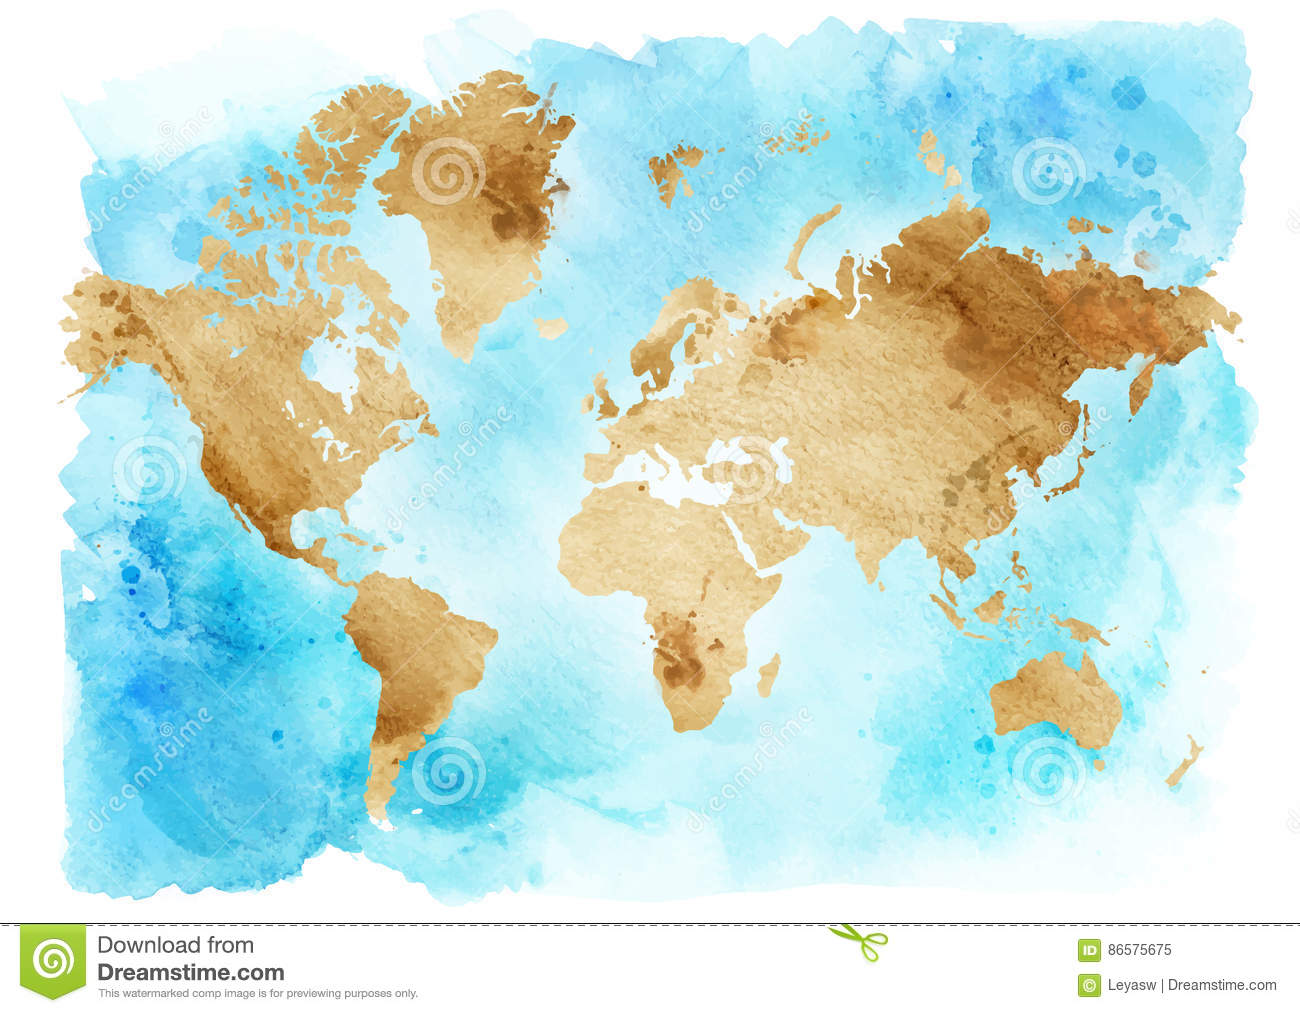 Vintage Map Of World.Vintage Map Of The World On A Blue Background Watercolor